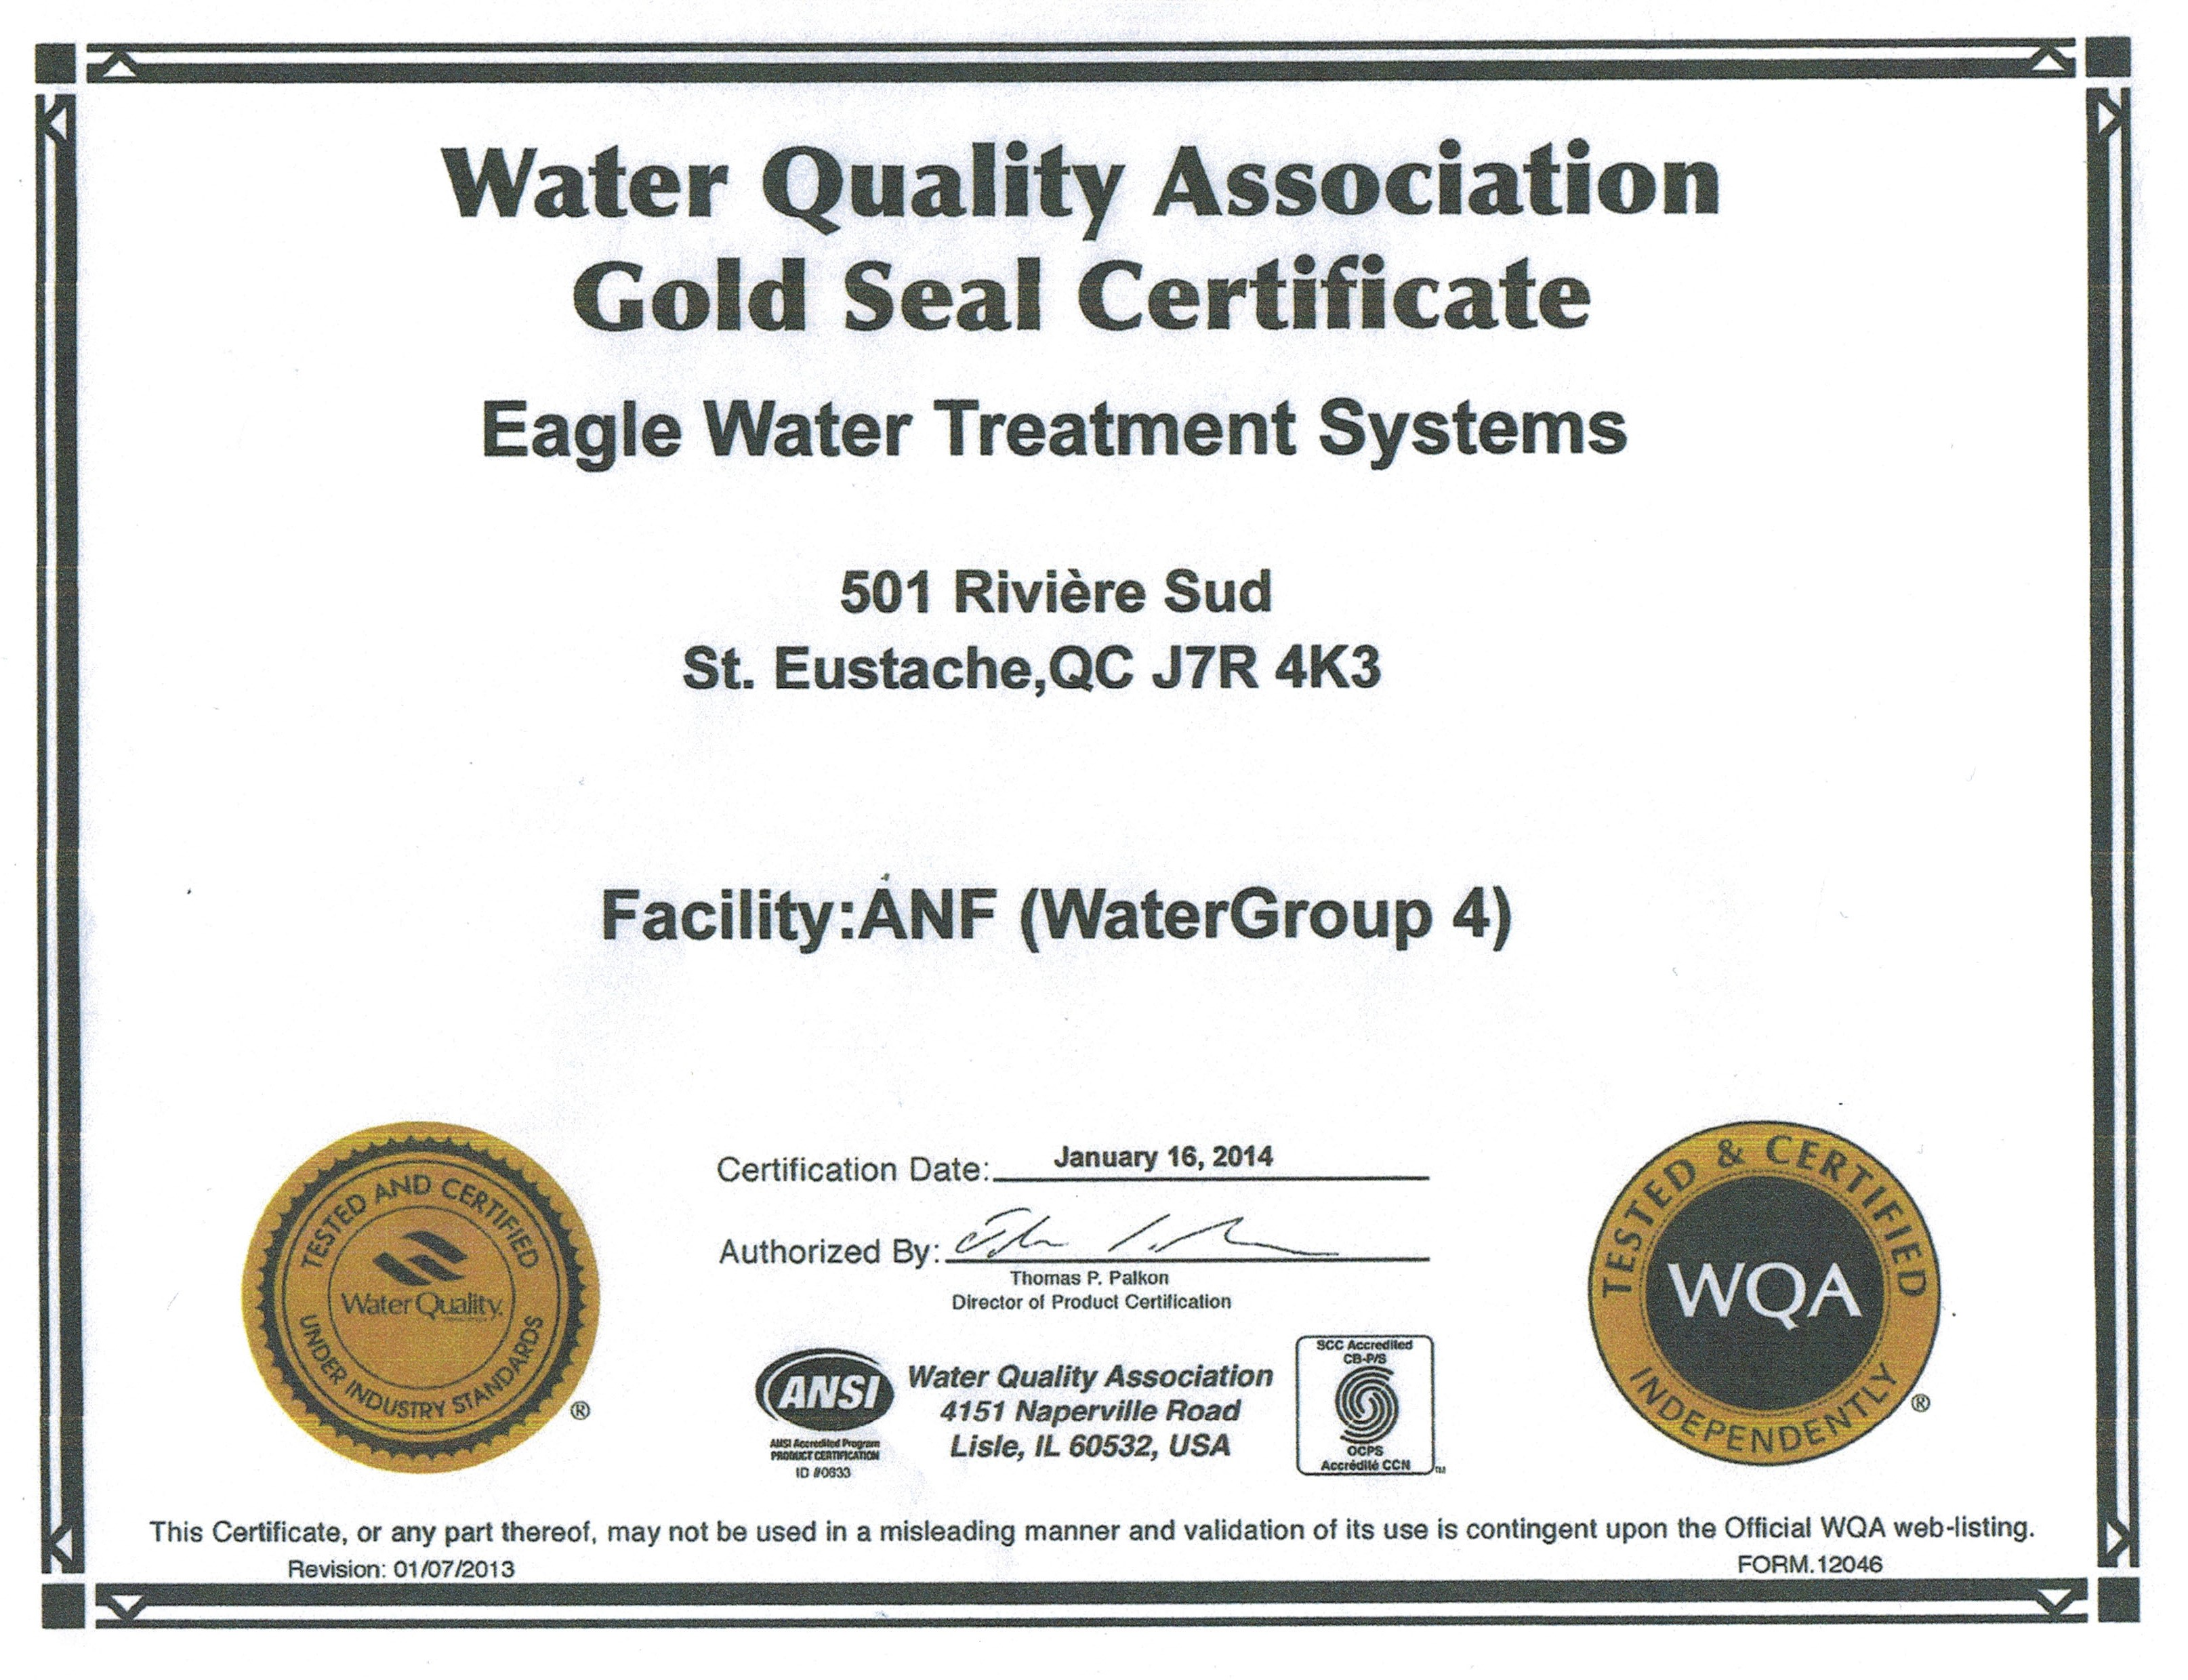 Home Water Treatment Systems Certifications Partners Eagle Water Treatment Systems